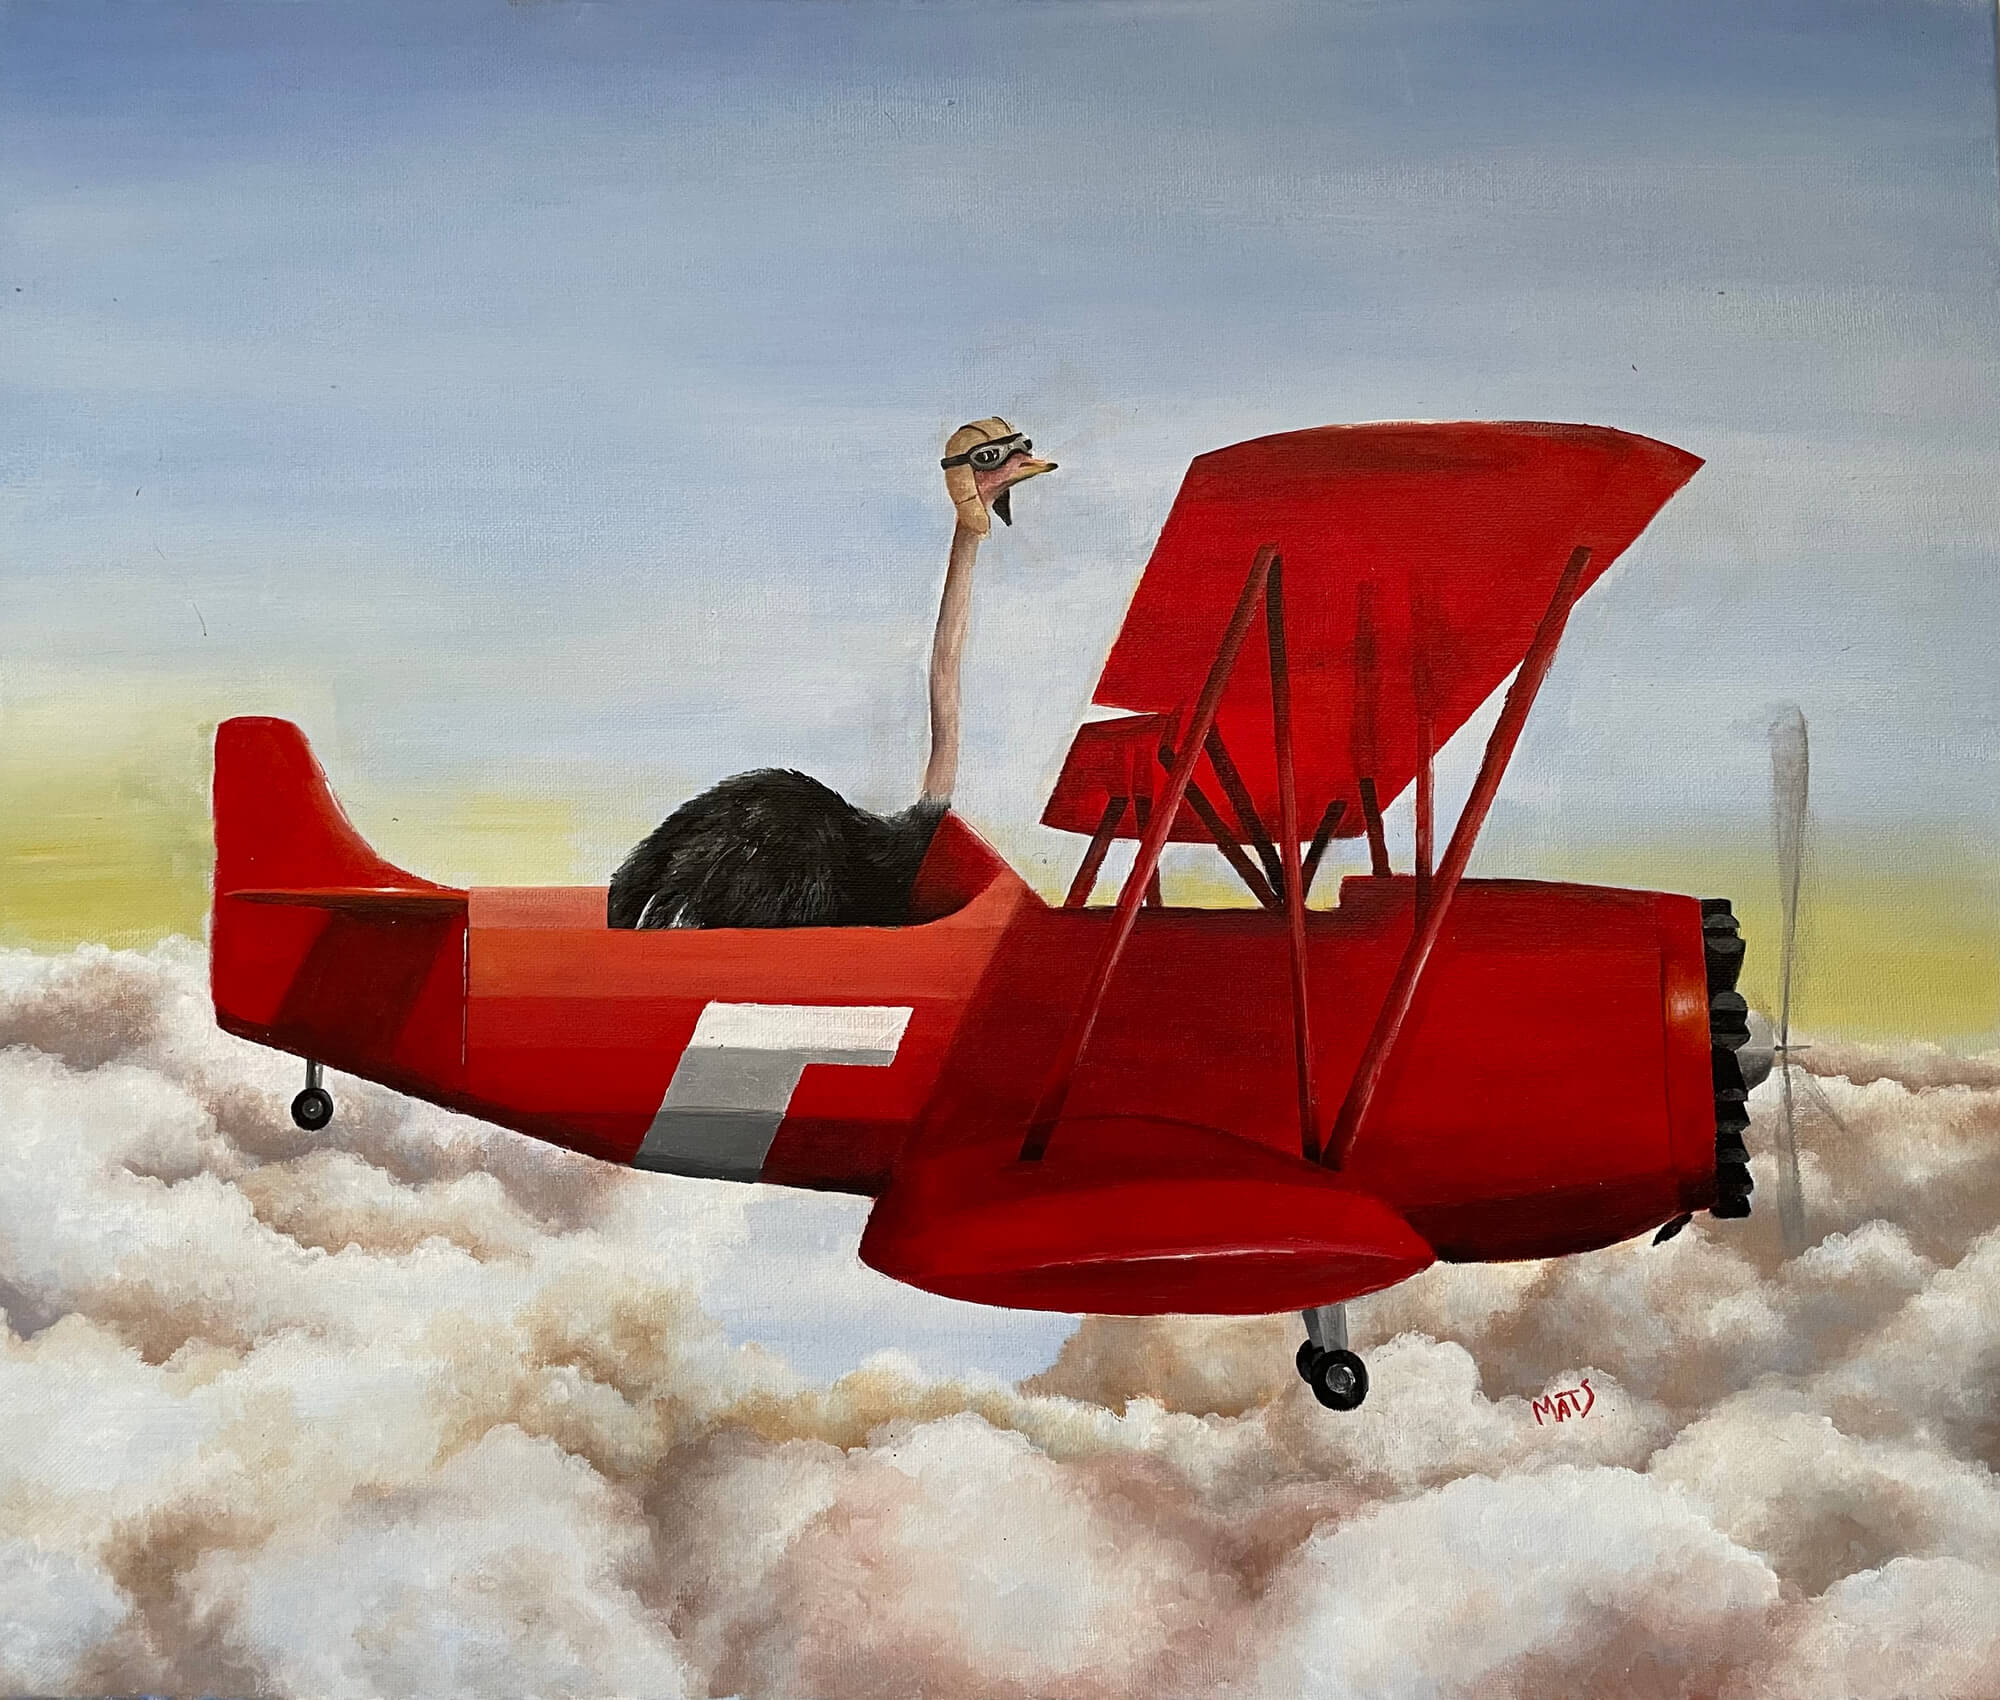 Painting of an ostrich with googles flying a WWII red plane above the clouds by Marisabel A. Torres Sanz